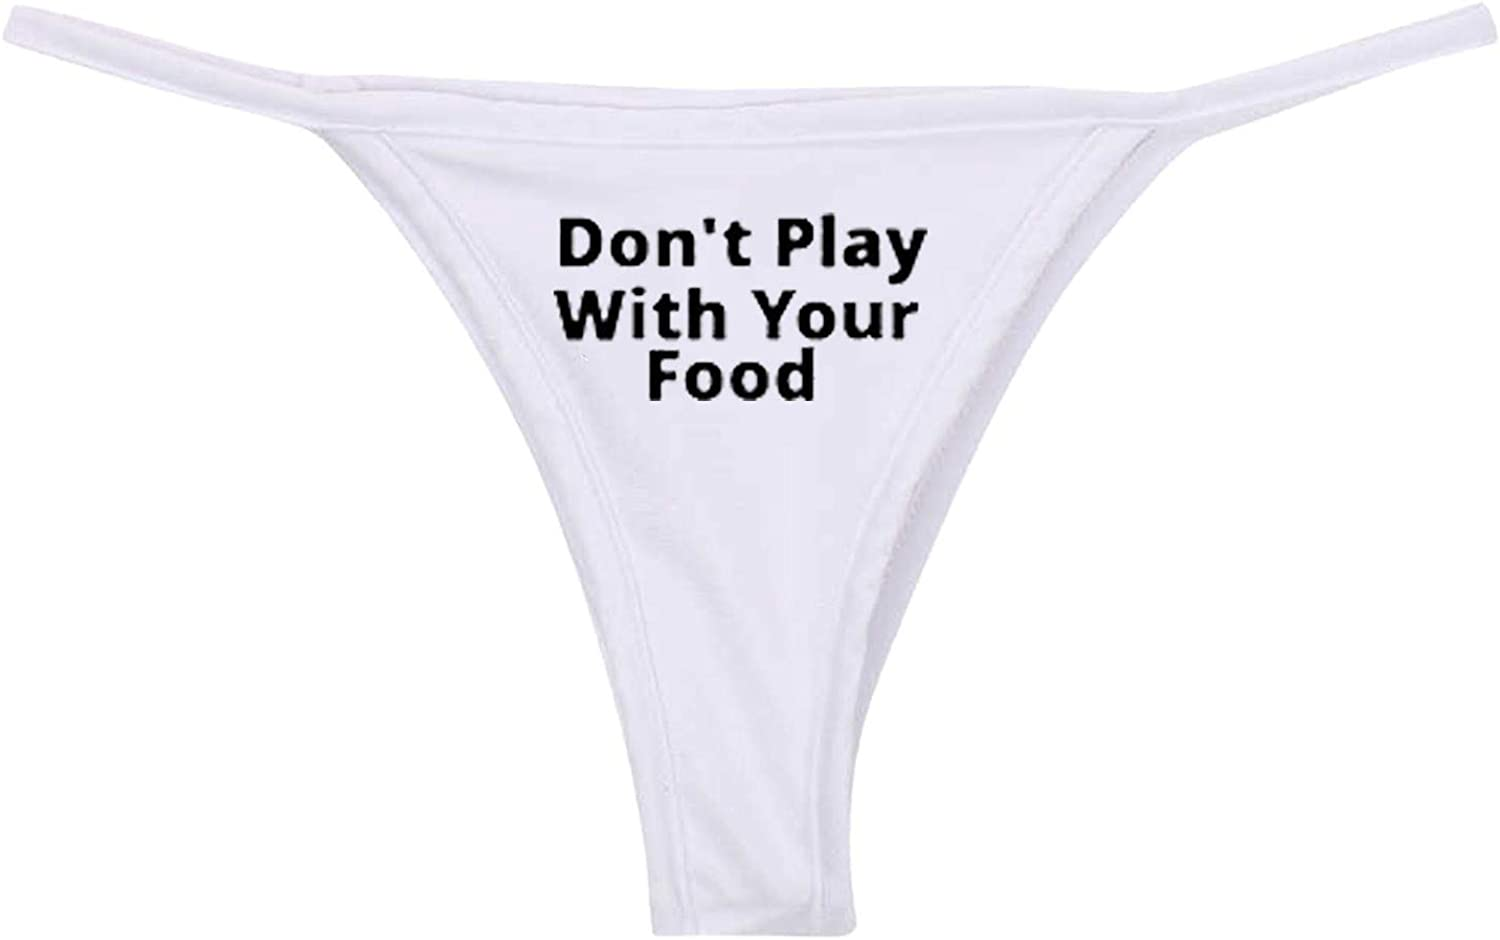 HuangLing Print Underwear for Women Cotton Lingerie for Female Panty Pack and Briefs Ladies Seamless Hipster Undies